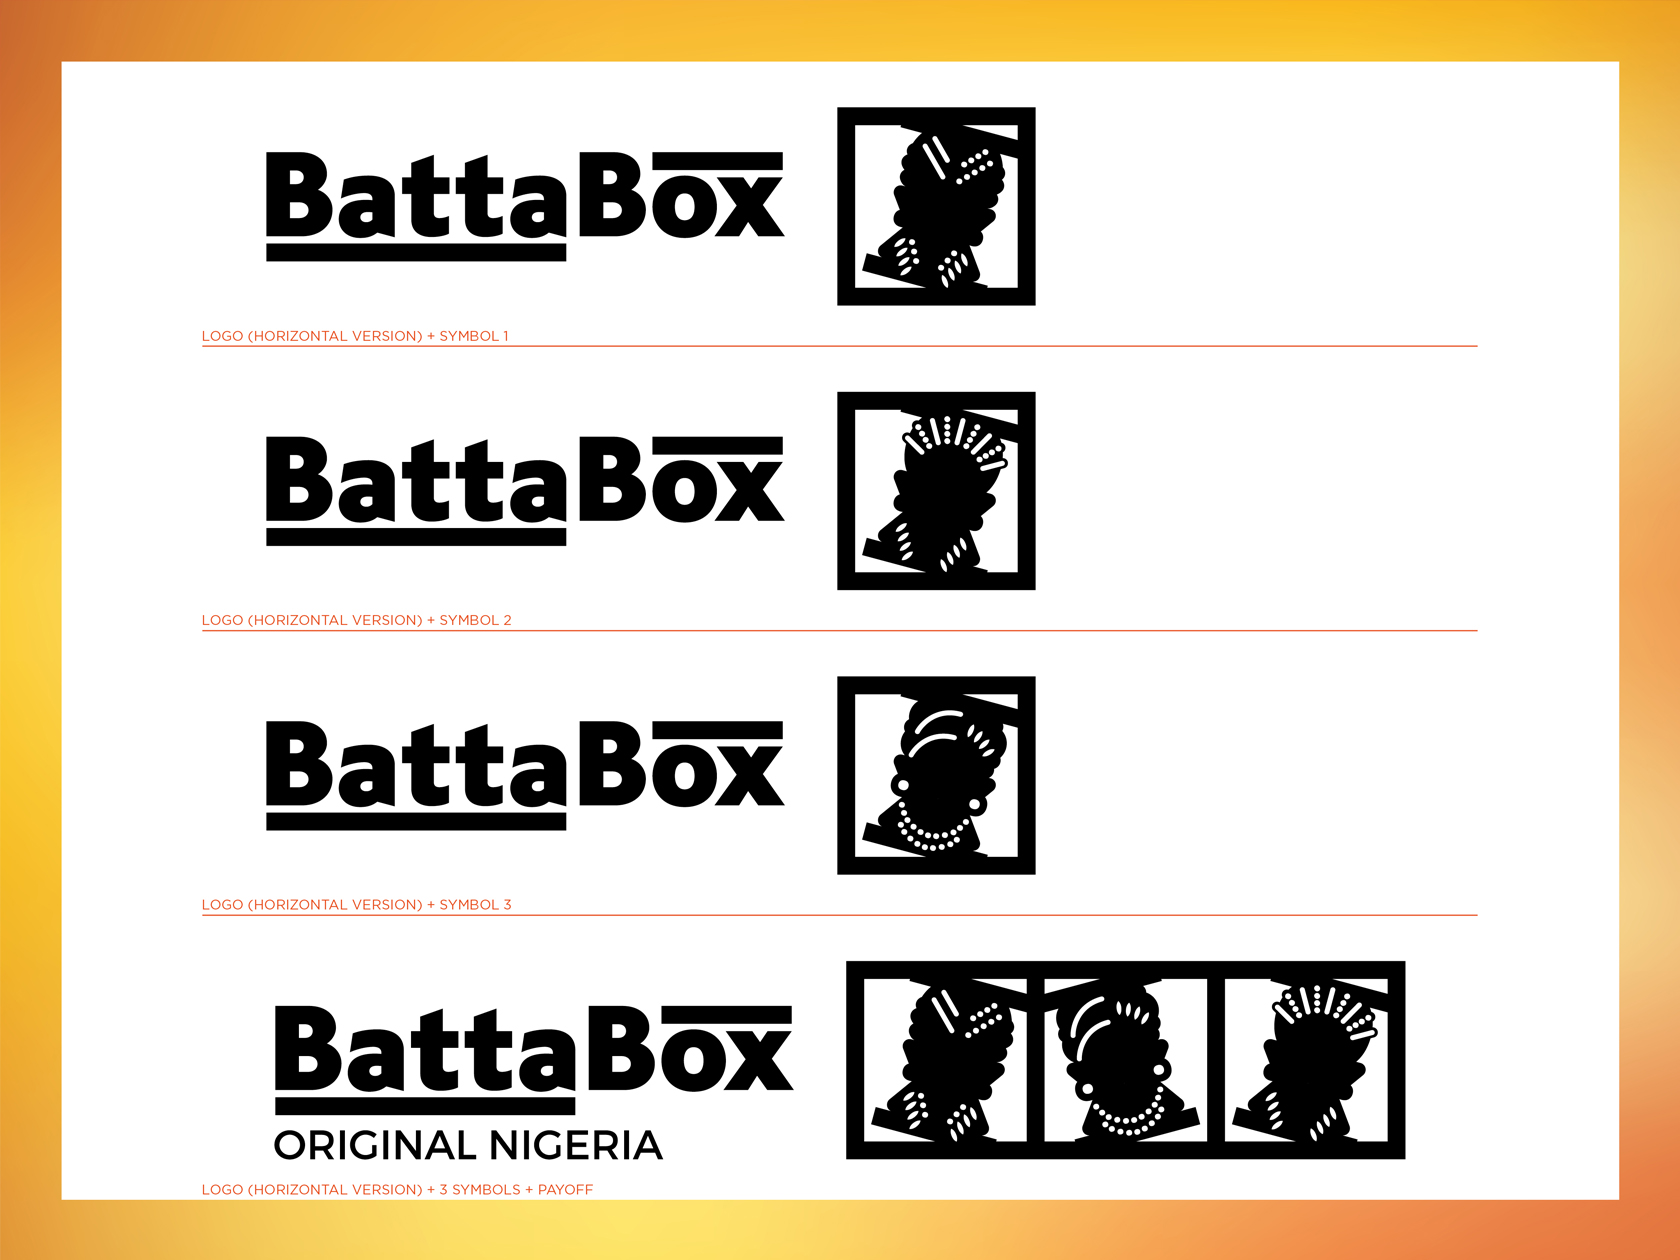 BattaBox - Original Nigeria